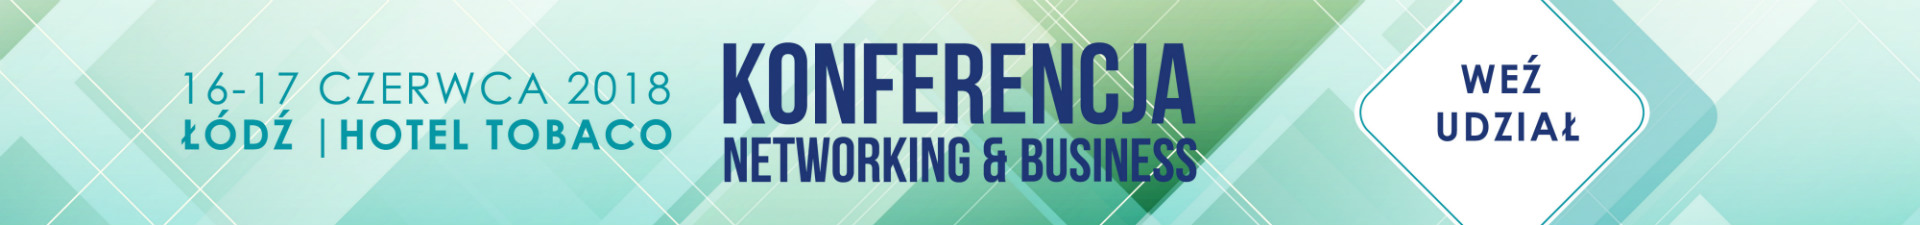 KONFERENCJA NETWORKING & BUSINESS